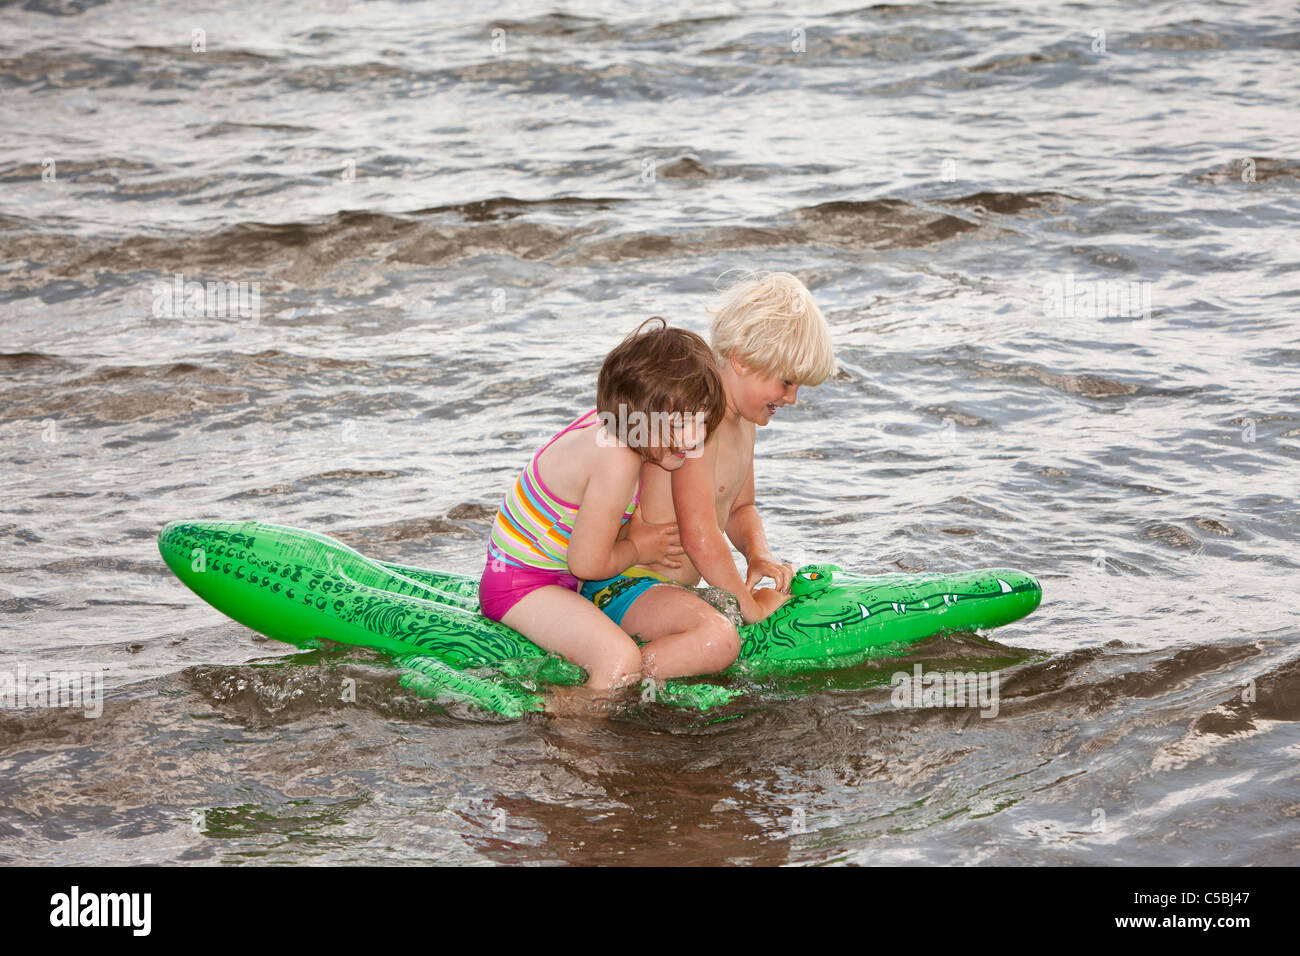 Side View Of A Boy And Girl Enjoying An Inflatable Crocodile Ride In Water